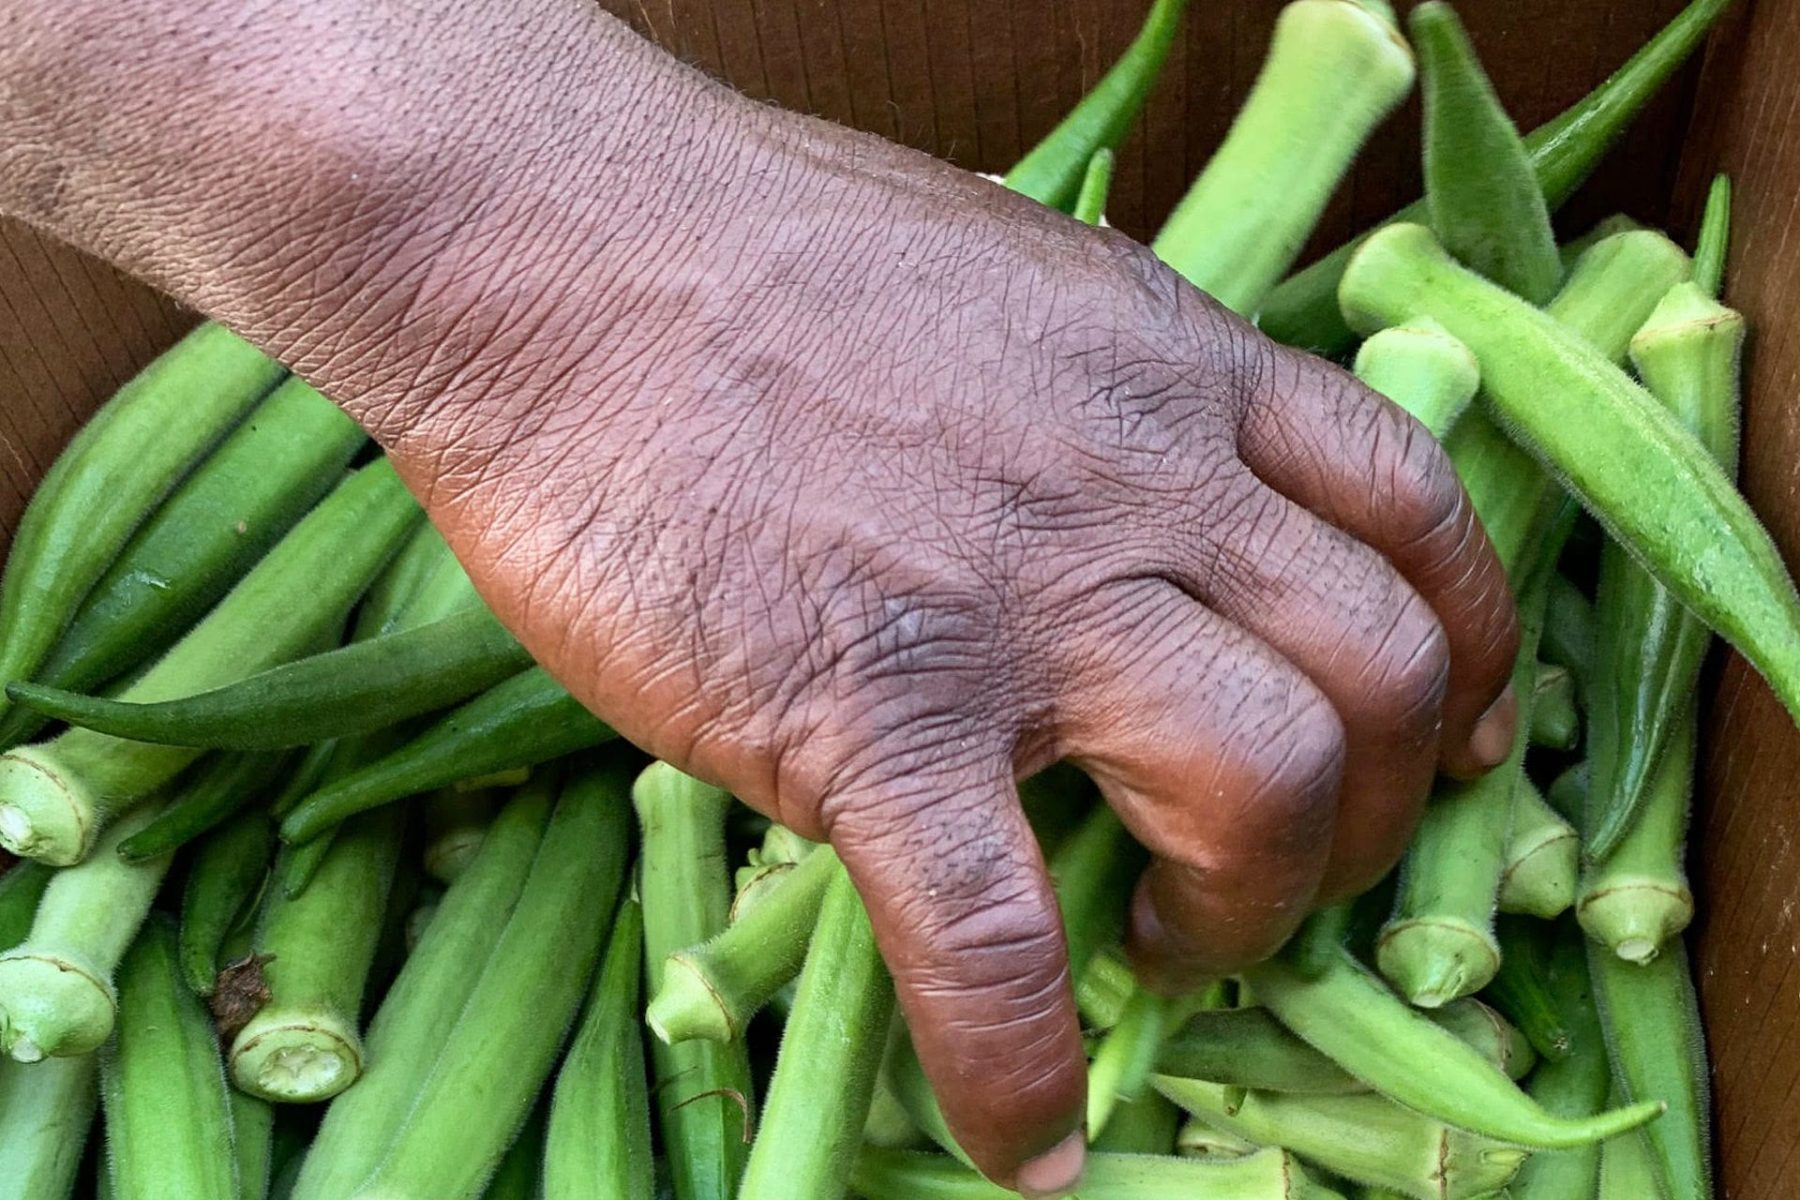 Woman grabbing a handful of okra from a cardboard box